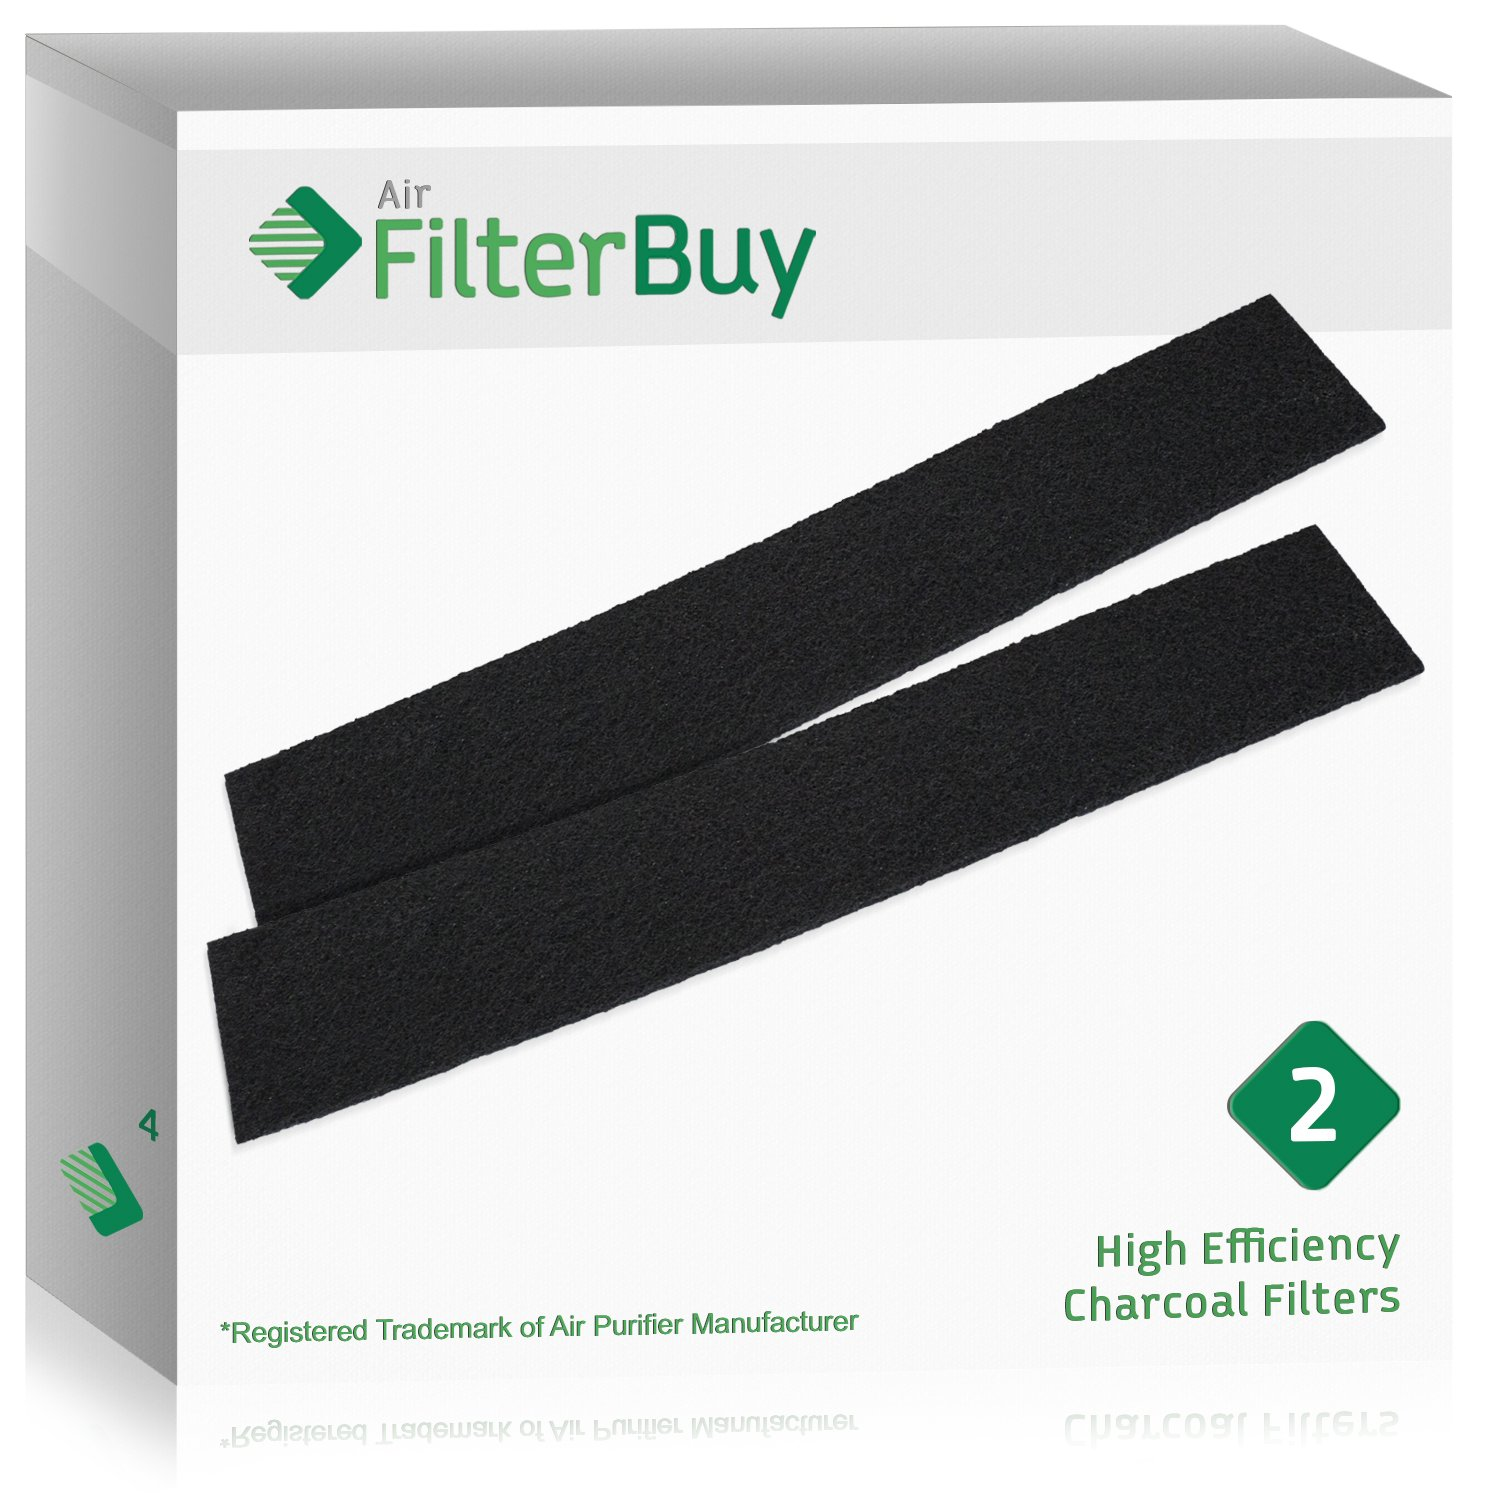 FilterBuy Honeywell HRF-B2 Filter B Replacement Charcoal Filters Designed by FilterBuy to be Compatible with Honeywell /& Vicks Air Purifiers. 2